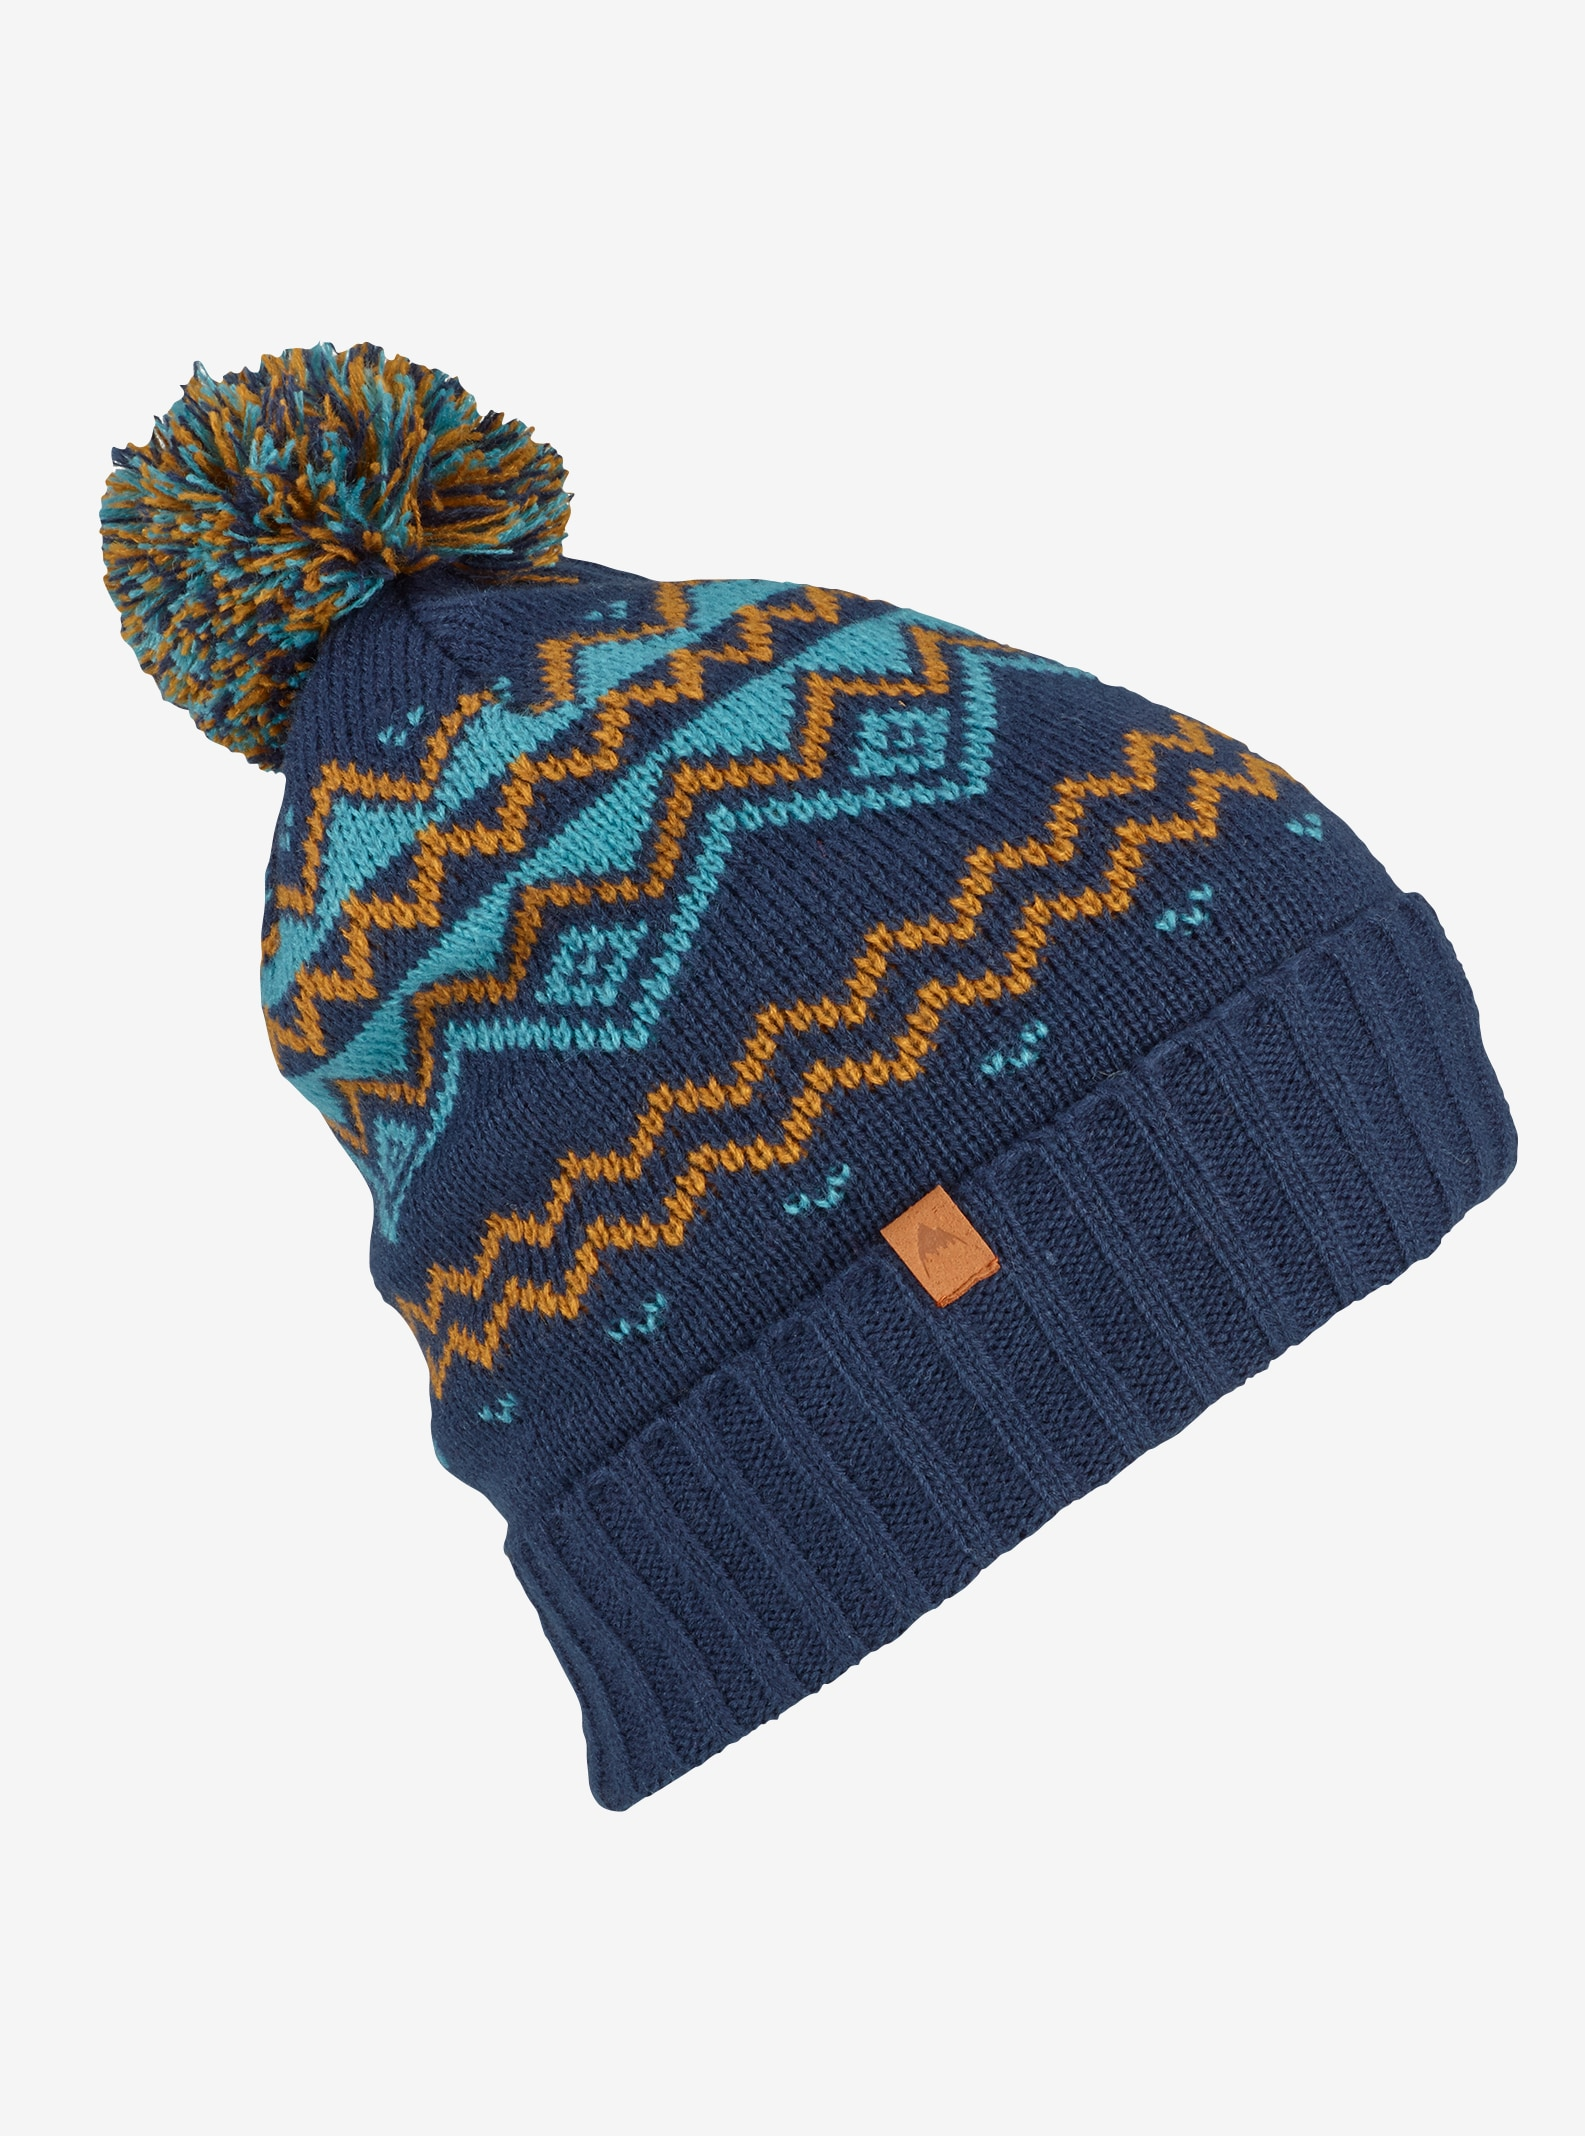 Men's Burton Mountain Man Beanie shown in Mood Indigo